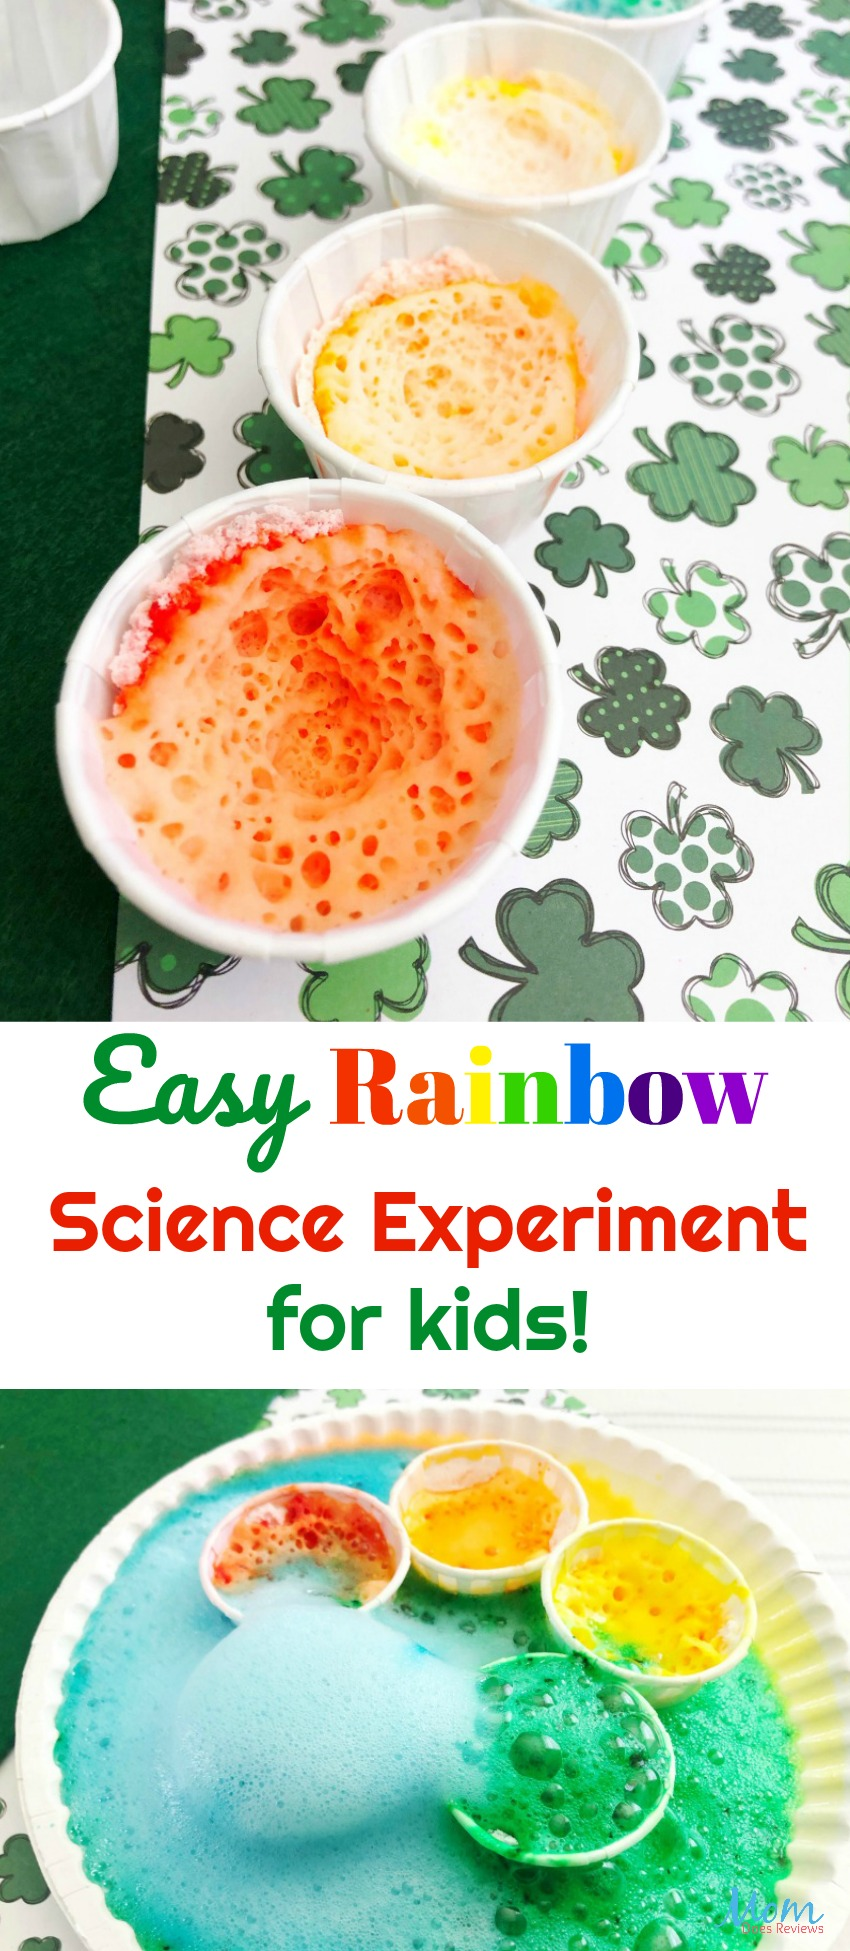 Easy Rainbow Science Experiment for the Kids #science #fun #learning #STEM #education #craft #diy